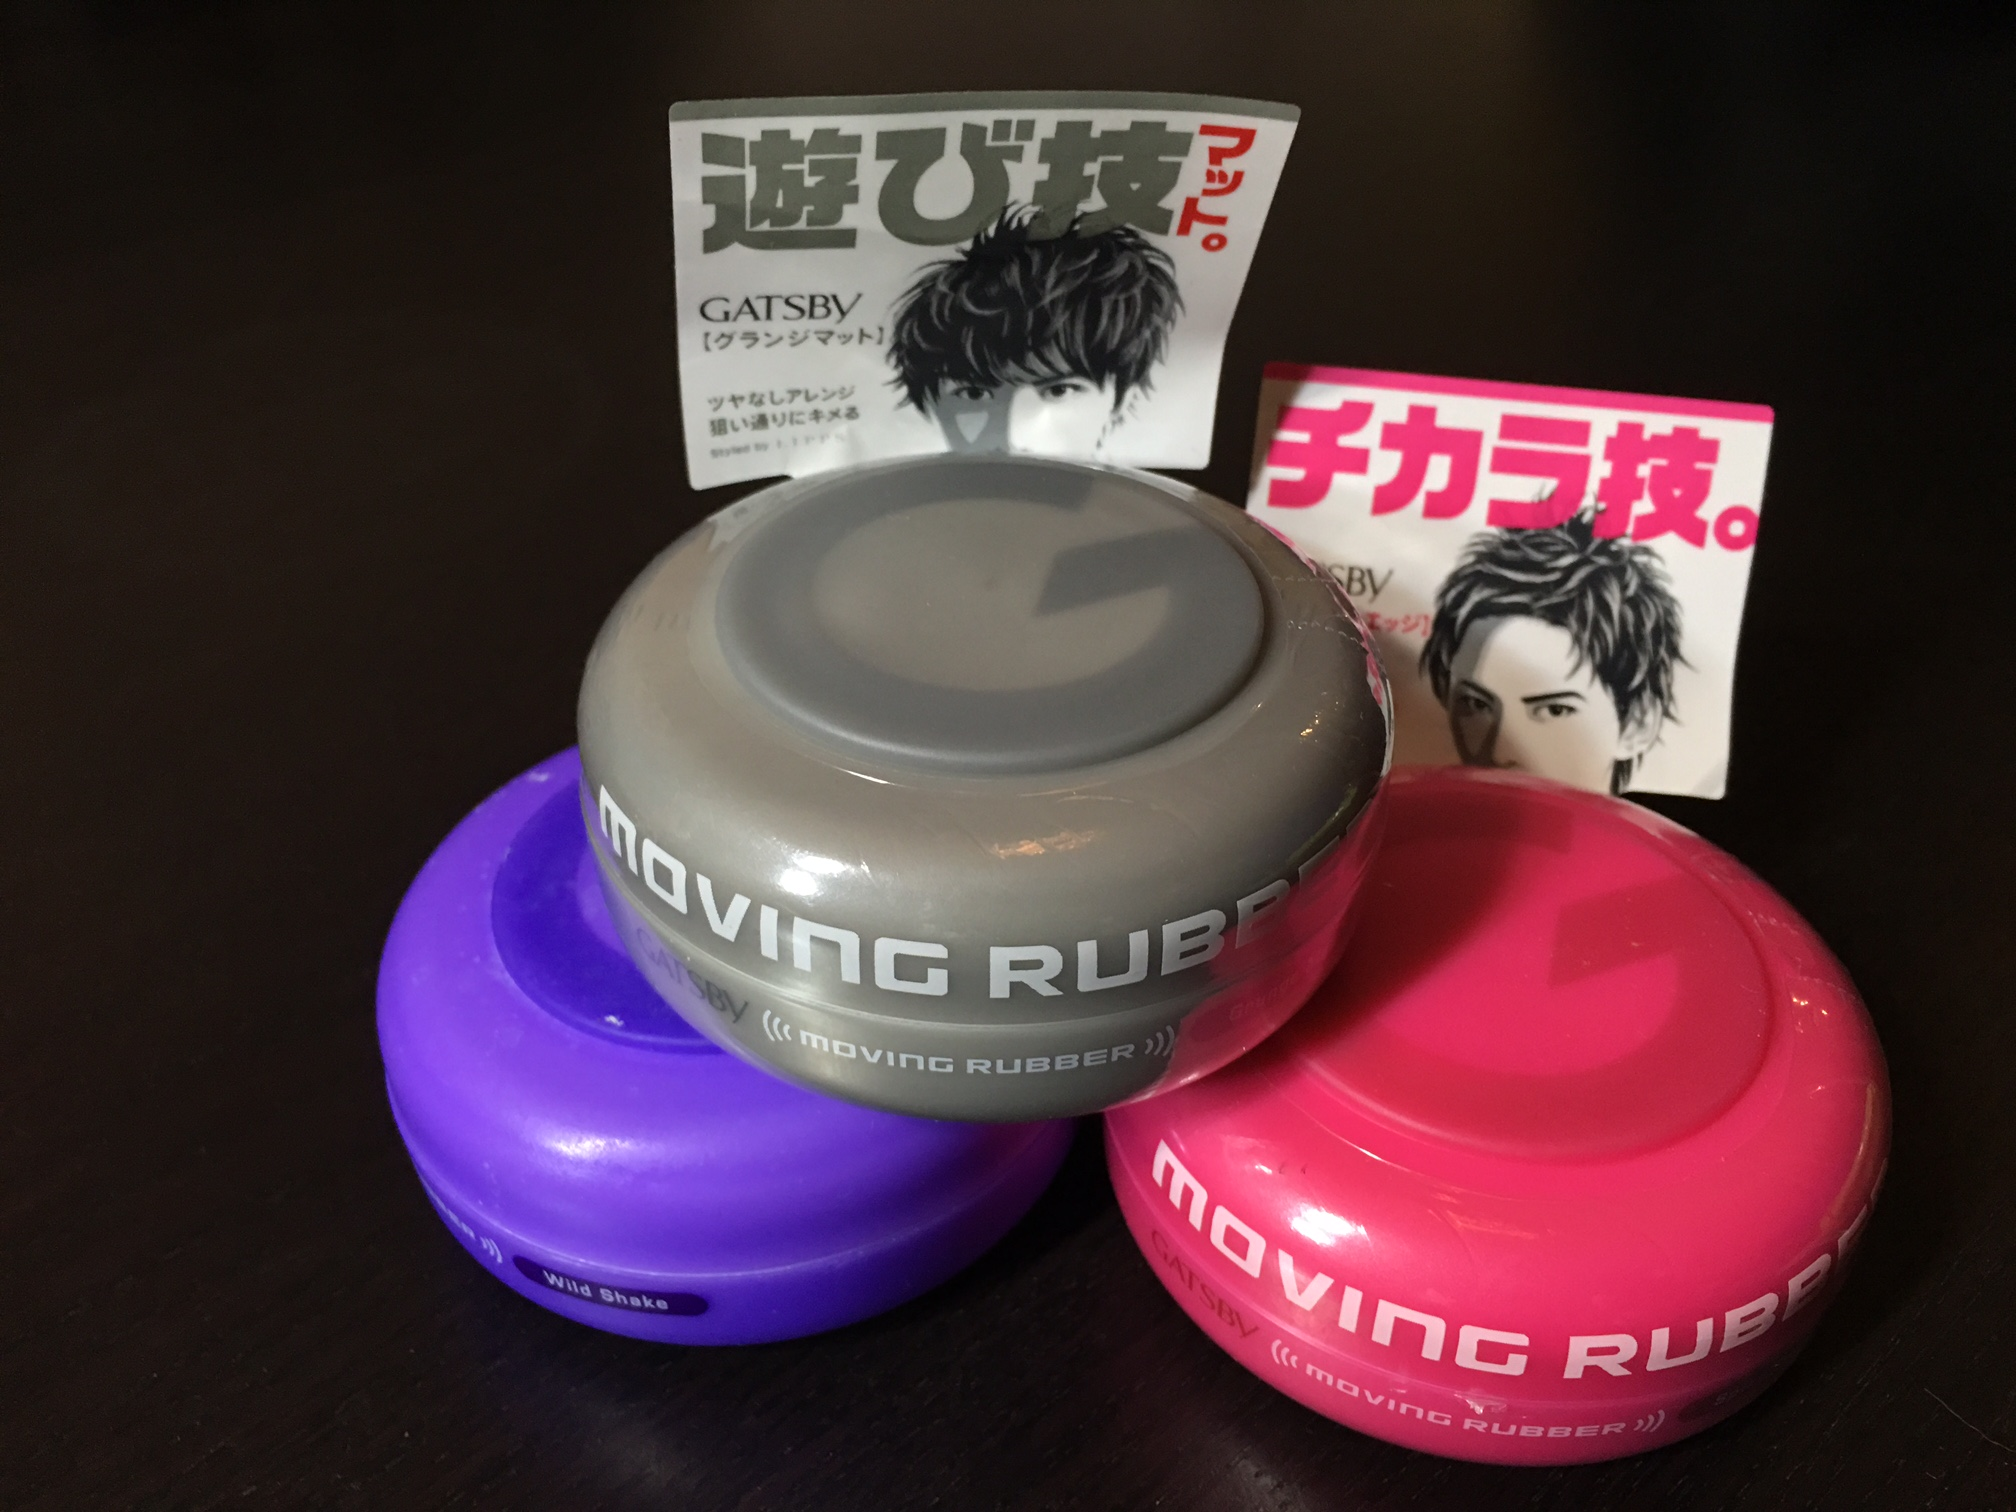 Gatsby Wax Affordable Hair With Great Long Lasting Hold Buys Moving Rubber Spiky Edge Friends